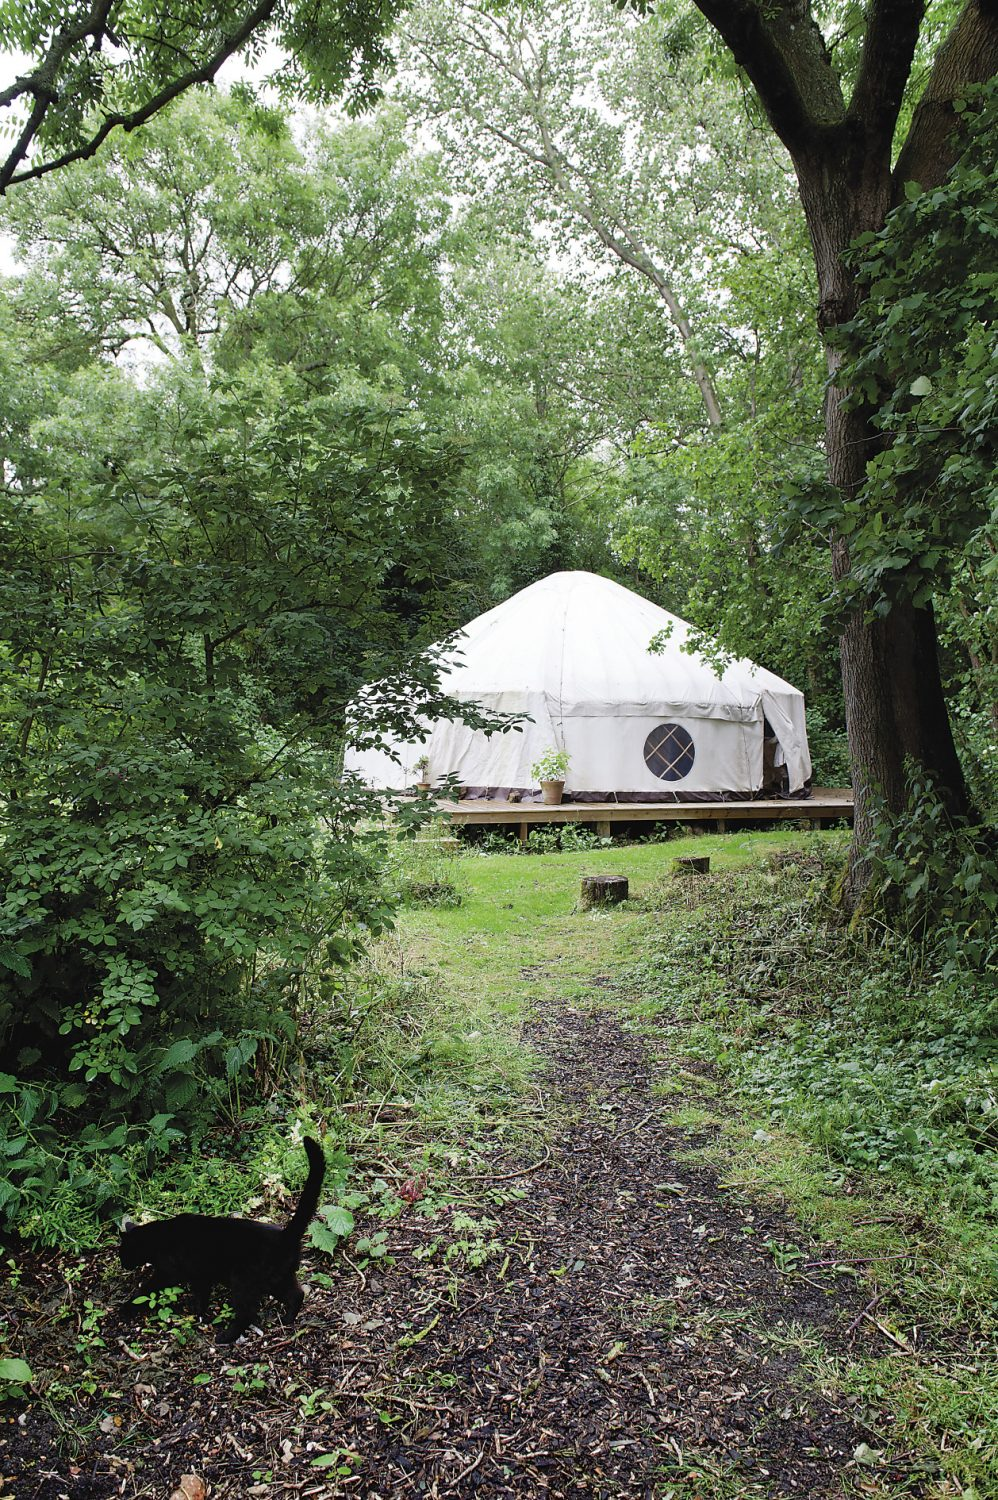 A path gently winds its way through the woods to a magnificent yurt. Inside the vast dome, the supports have been cut from hazel trees at Stanmer Park in Brighton. On its wooden floor there are yoga mats laid out in a neat circle ready for the next group